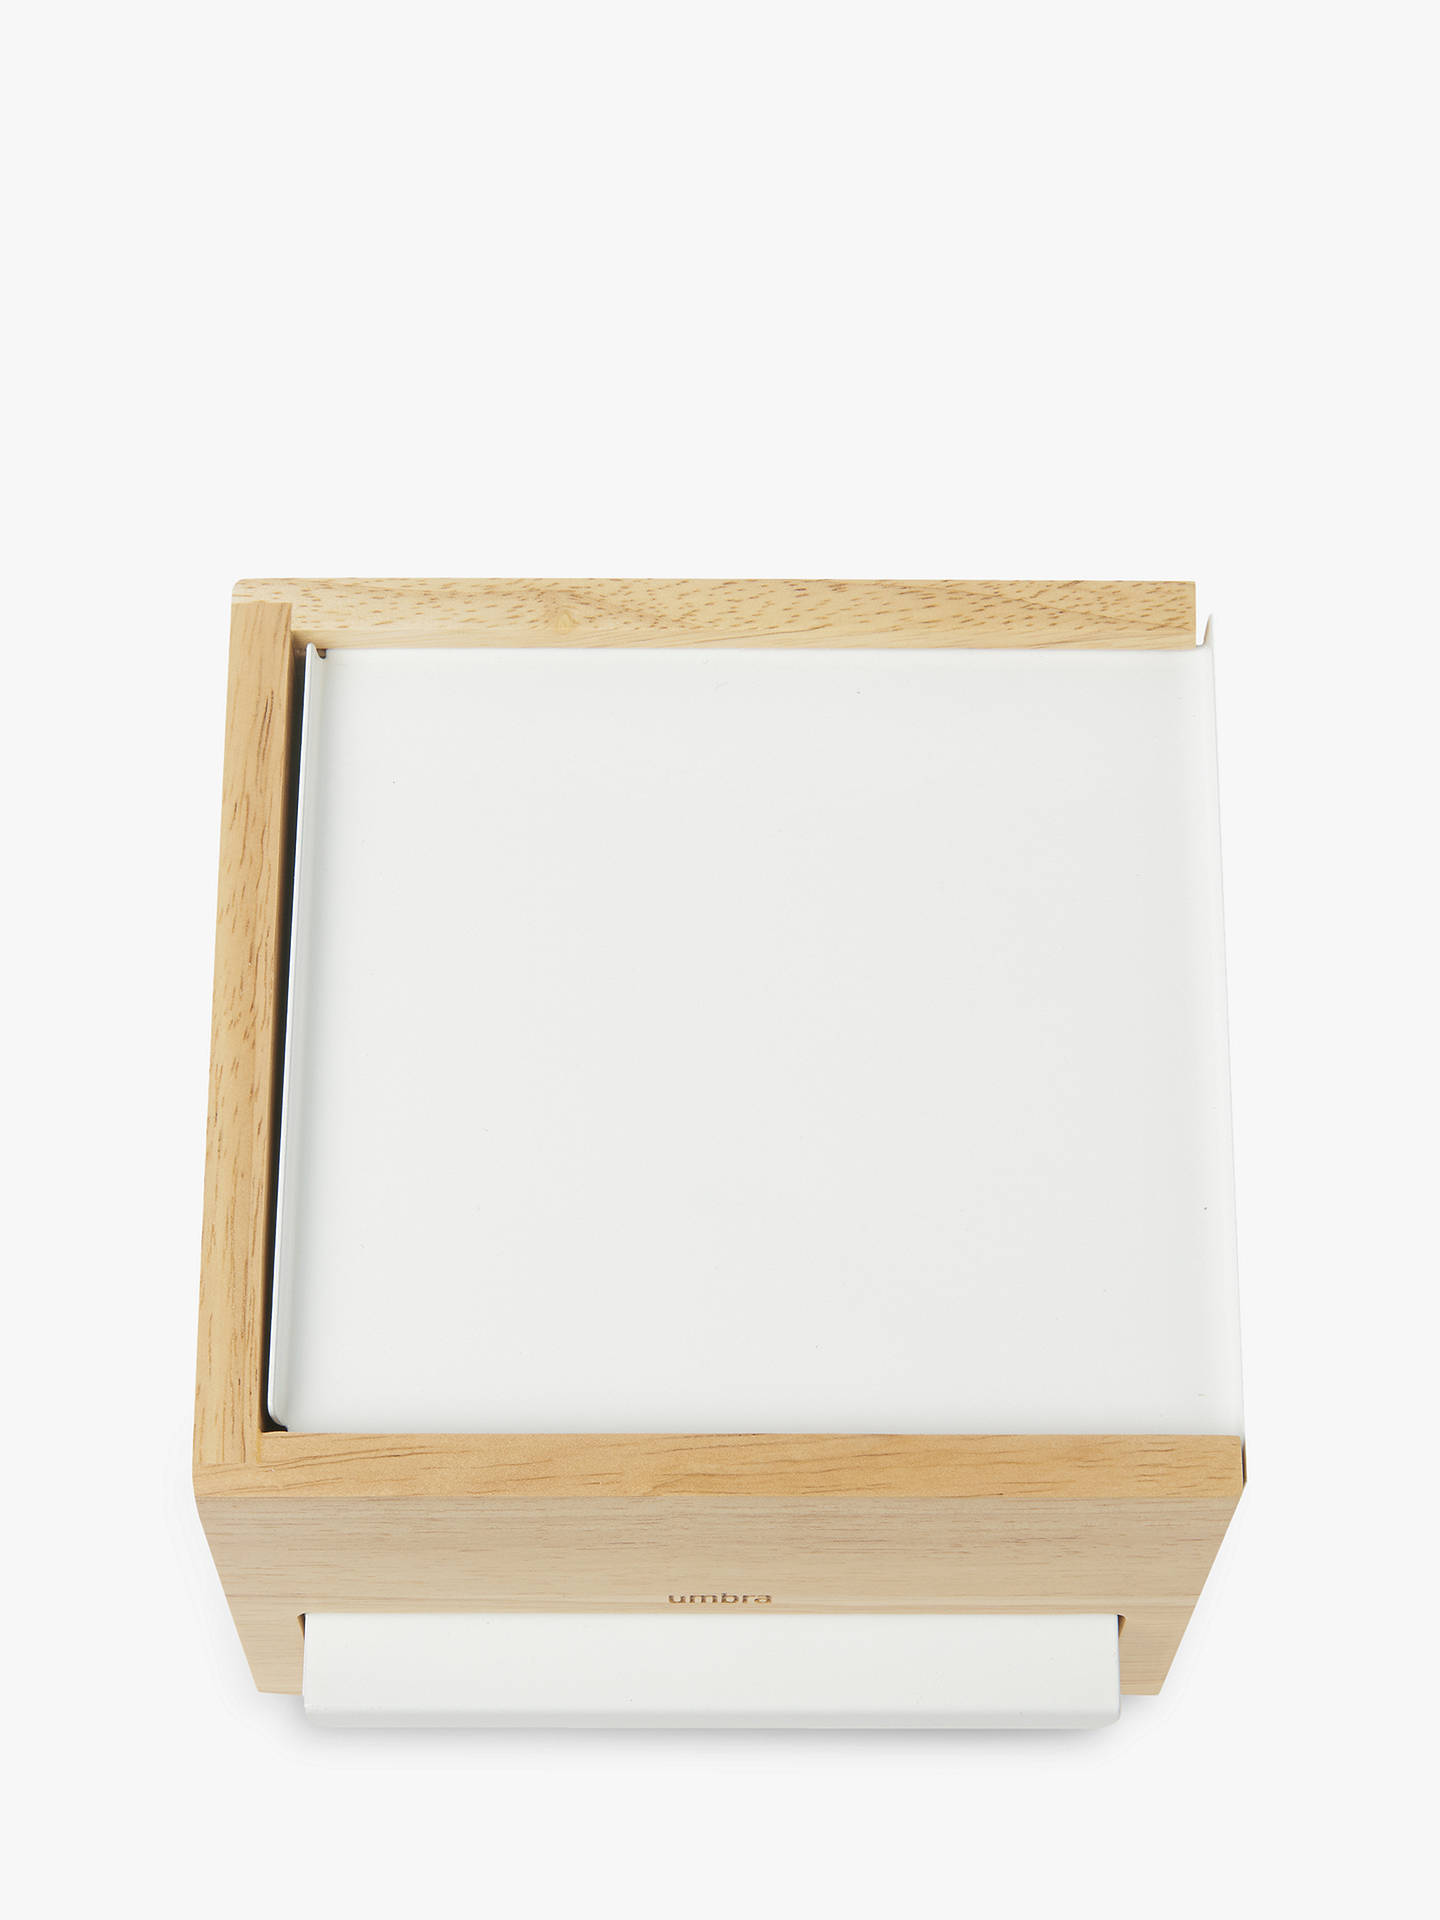 Buy Umbra Mini Stowit Jewellery Storage Box, Natural Online at johnlewis.com